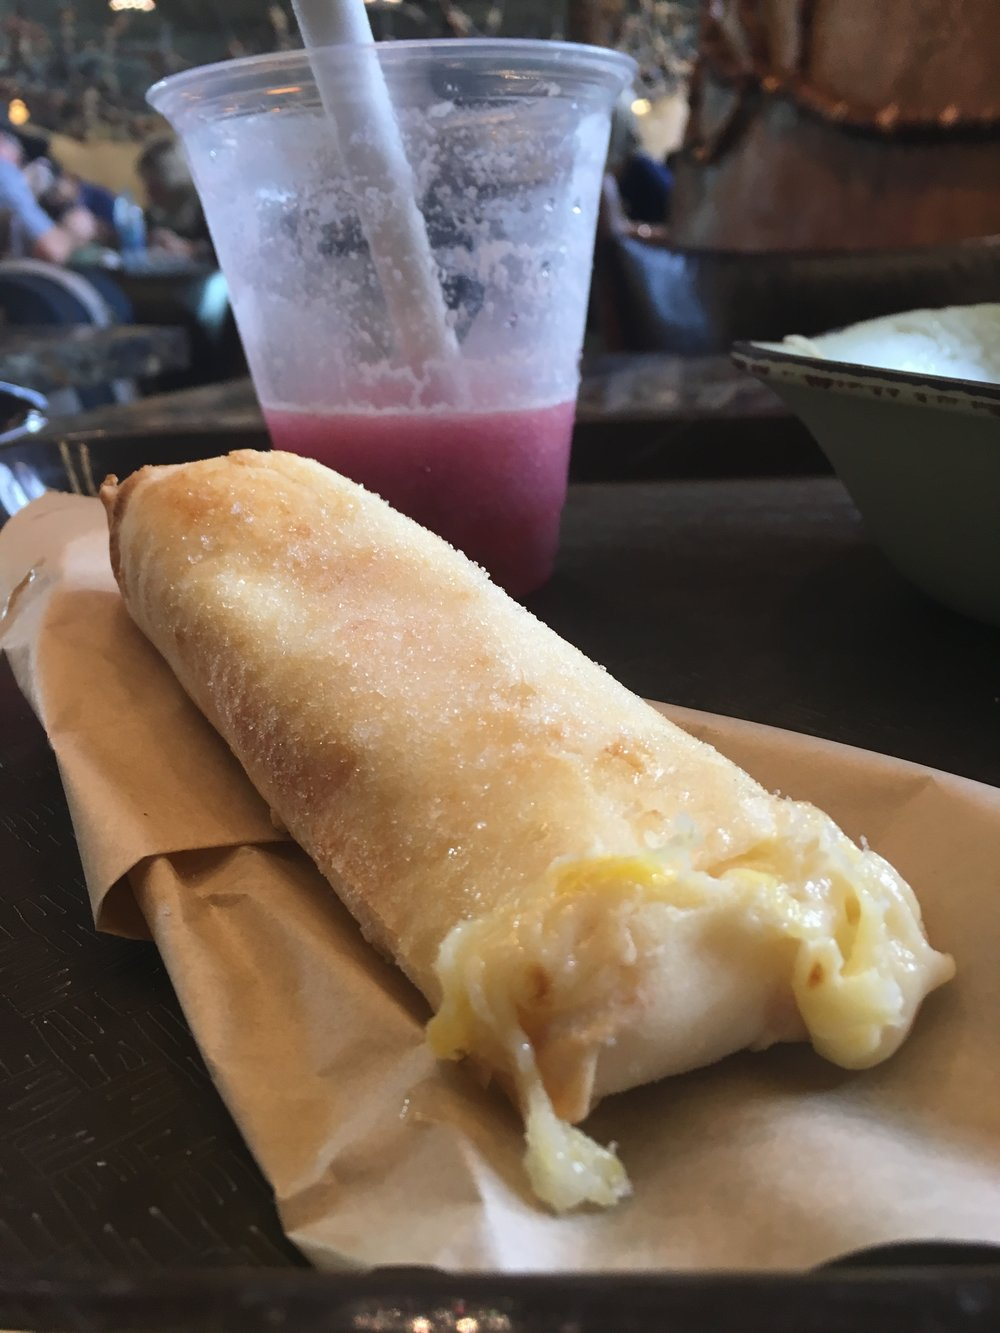 Pineapple cream-cheese lumpia